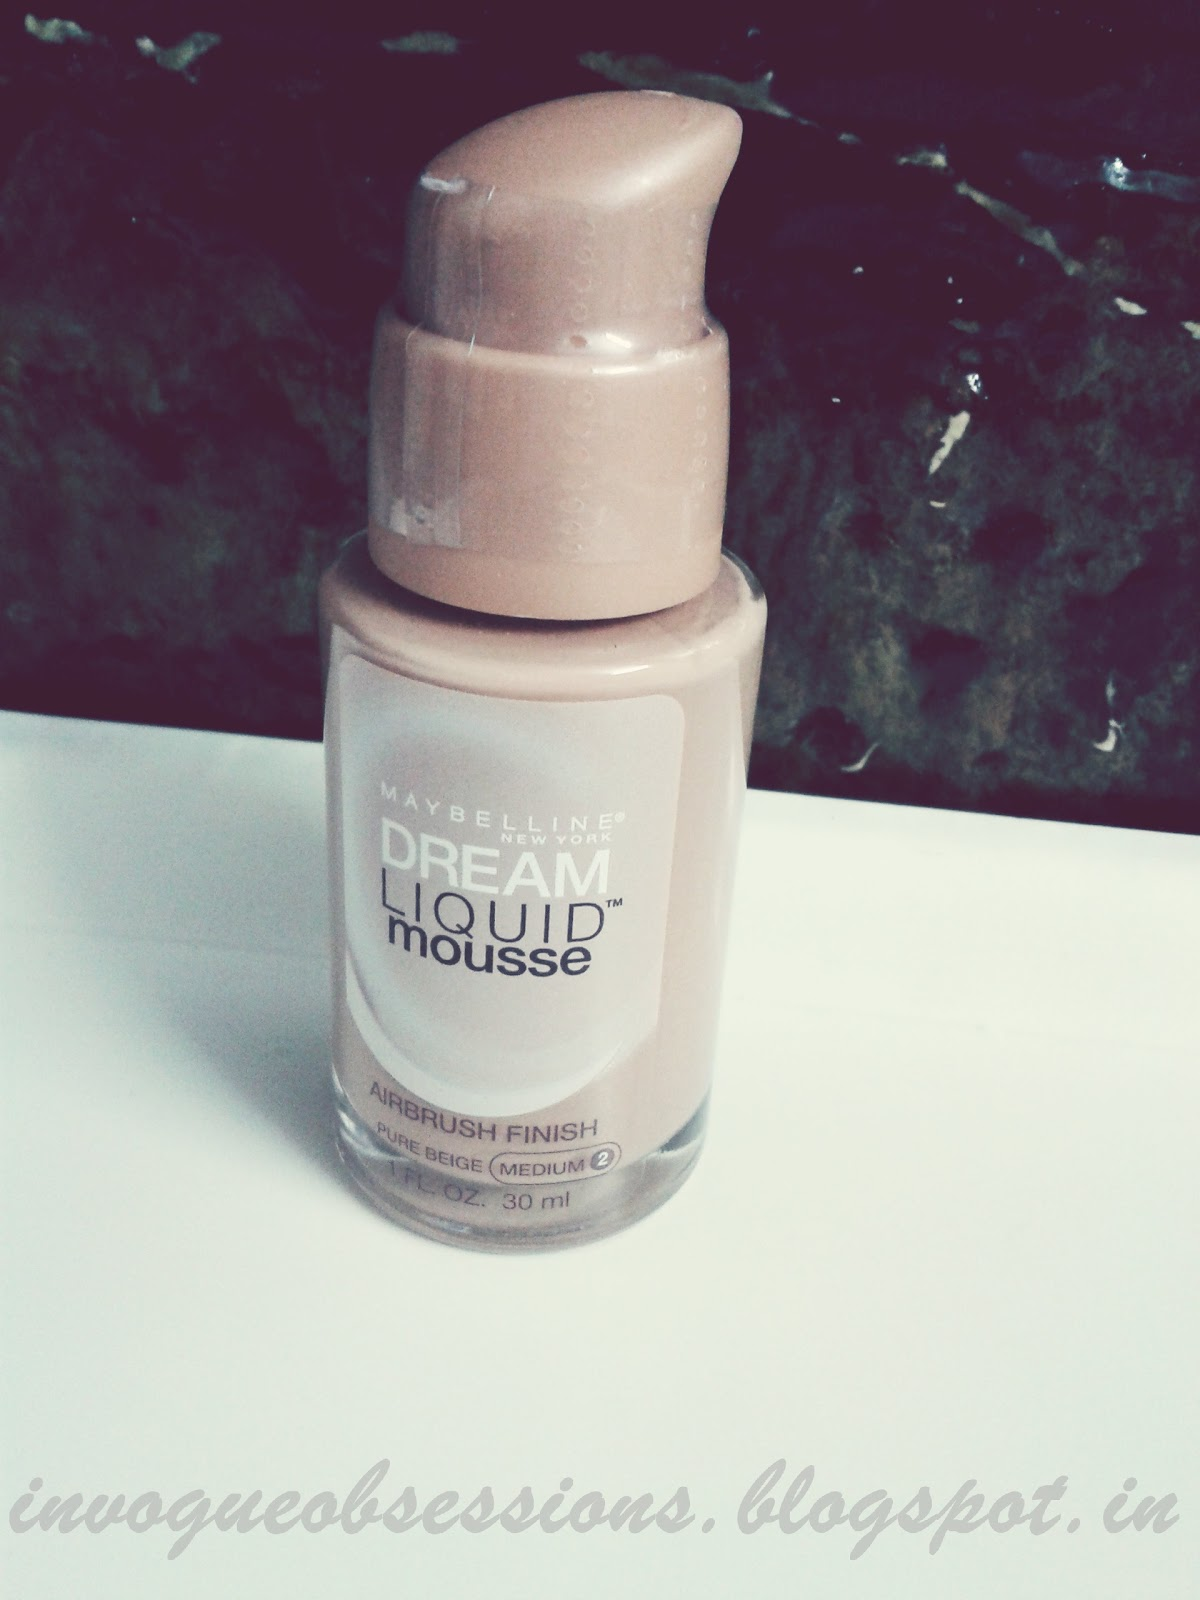 Maybelline Dream Liquid Mousse Foundation